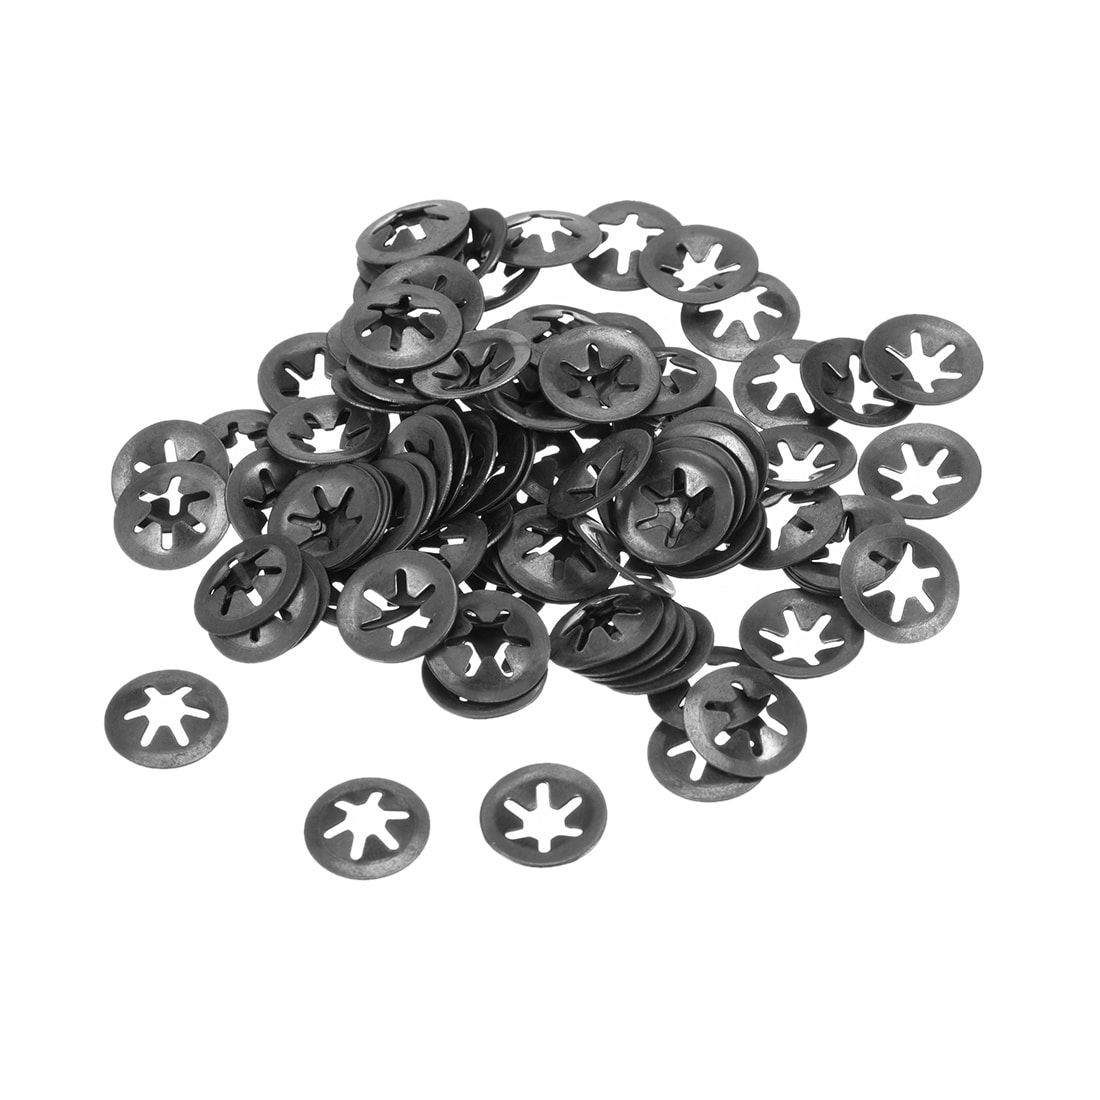 Stainless Steel 100pcs M4 Internal Tooth Starlock Washer 3.3mm I.D 12mm O.D